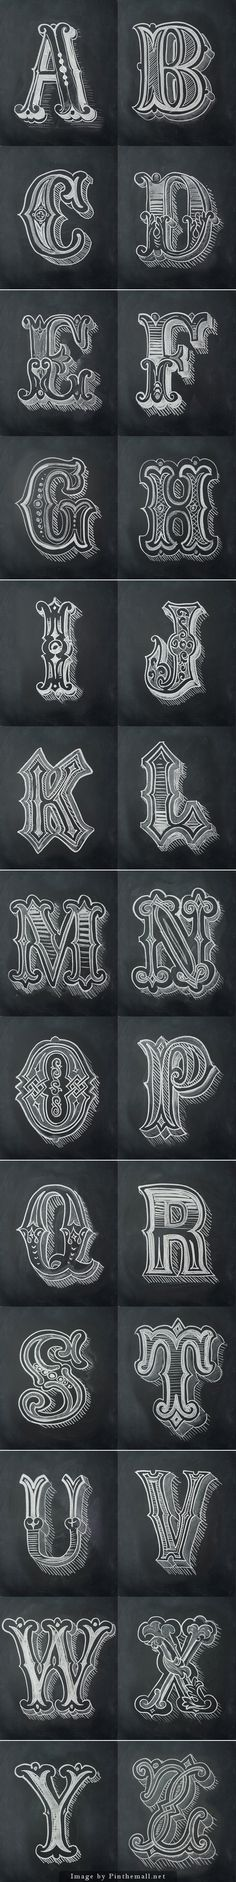 Chalk Alphabet by Antonio Rodrigues Jr... - a grouped images picture - Pin Them All                                                                                                                                                                                 More